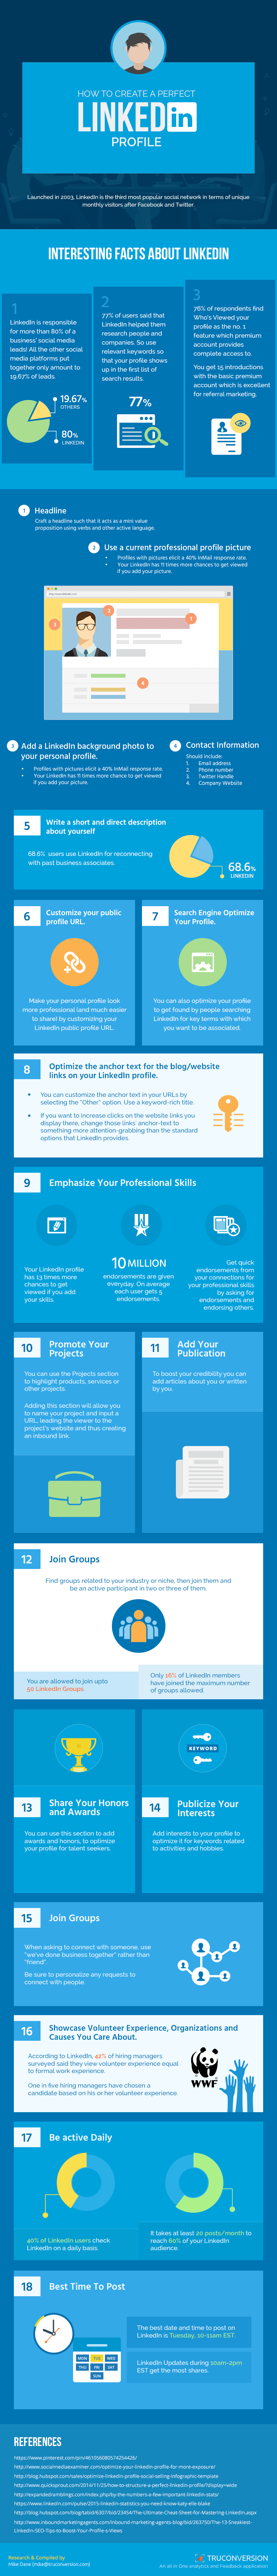 How to Create a Perfect LinkedIn Profile Infographic